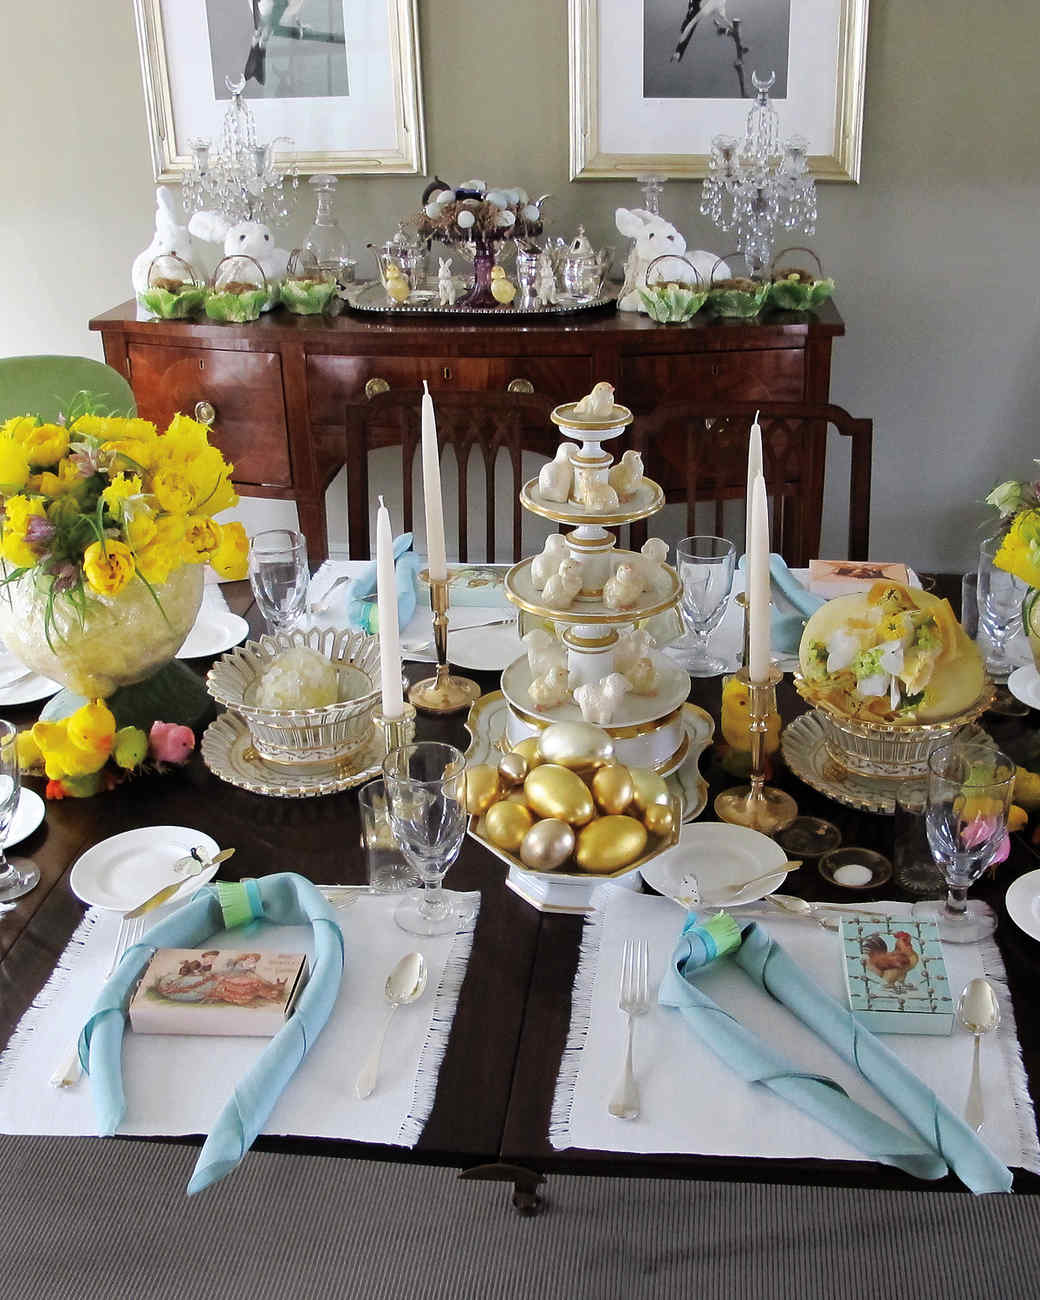 Spring Menagerie : easter table decoration ideas - www.pureclipart.com